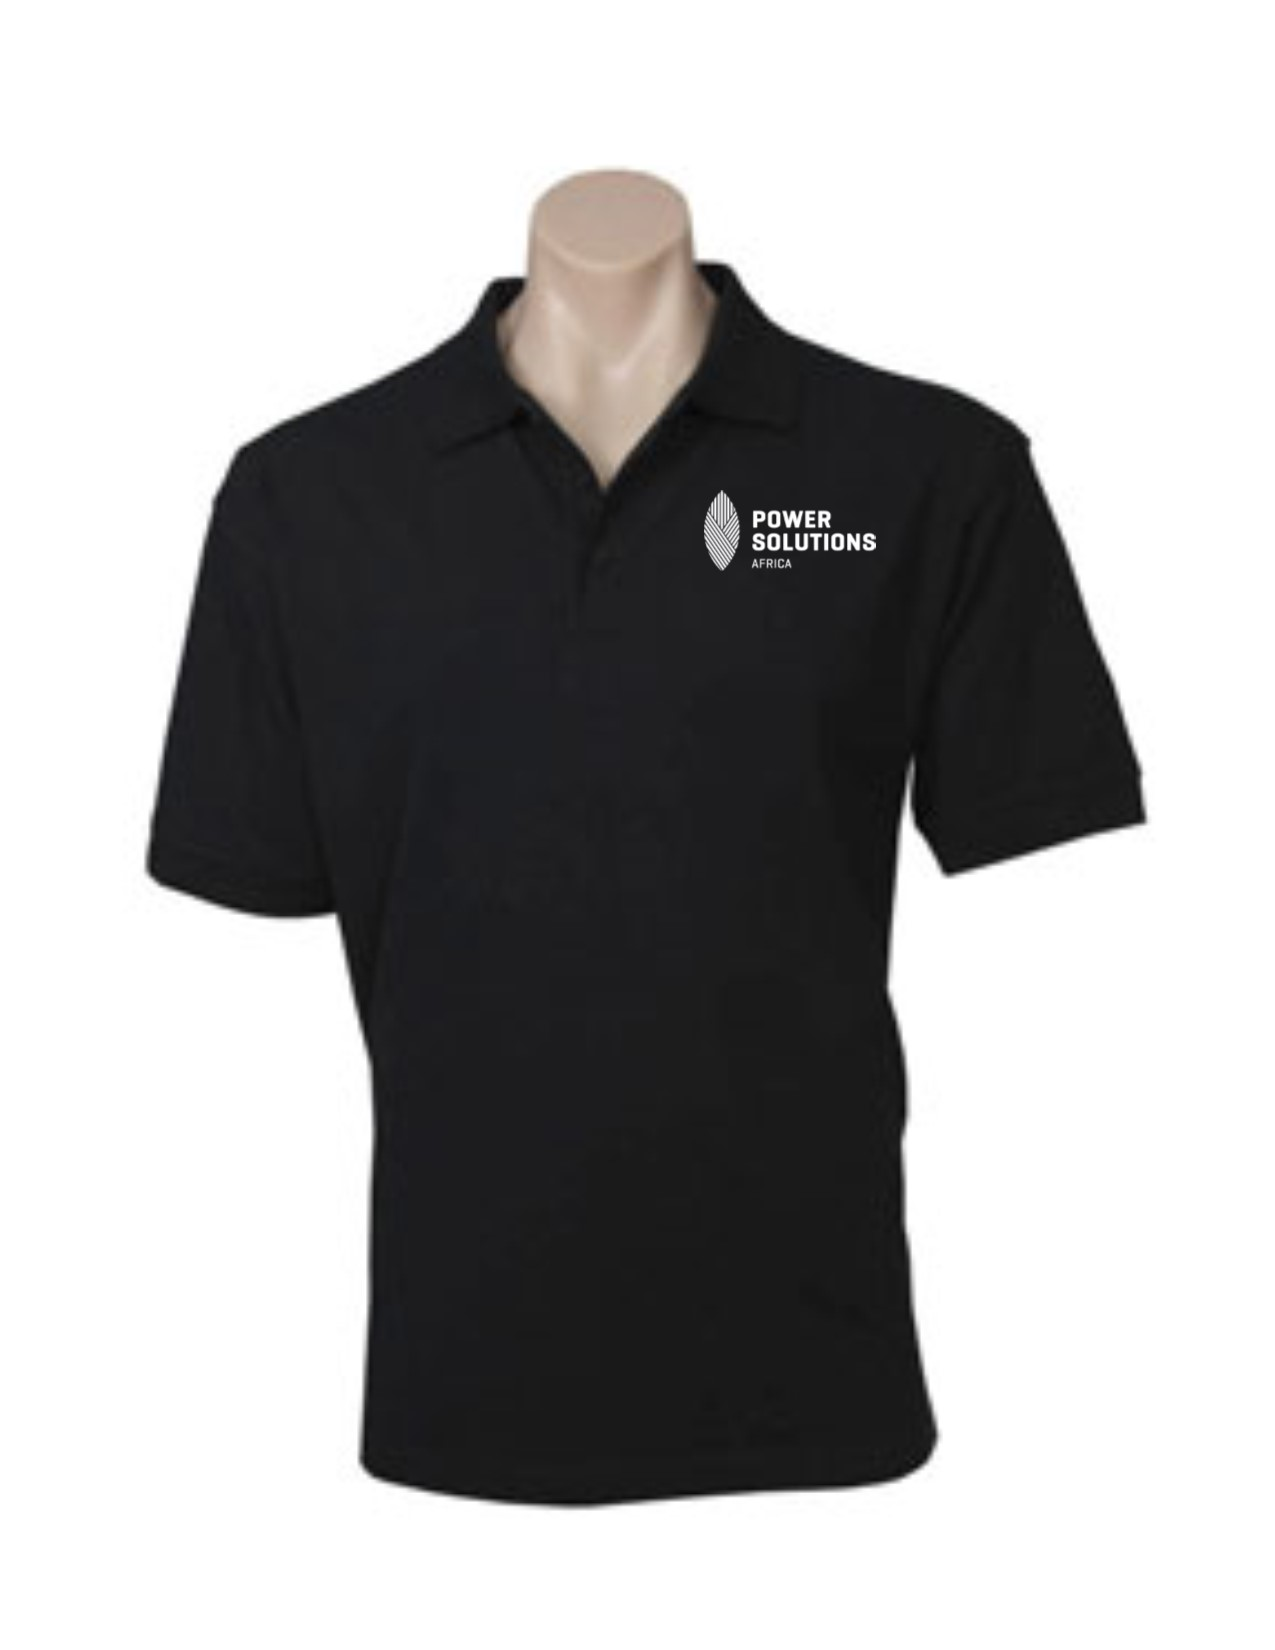 POLO MENS OCEANA NAVY 2XL - POWER SOLUTIONS LOGO